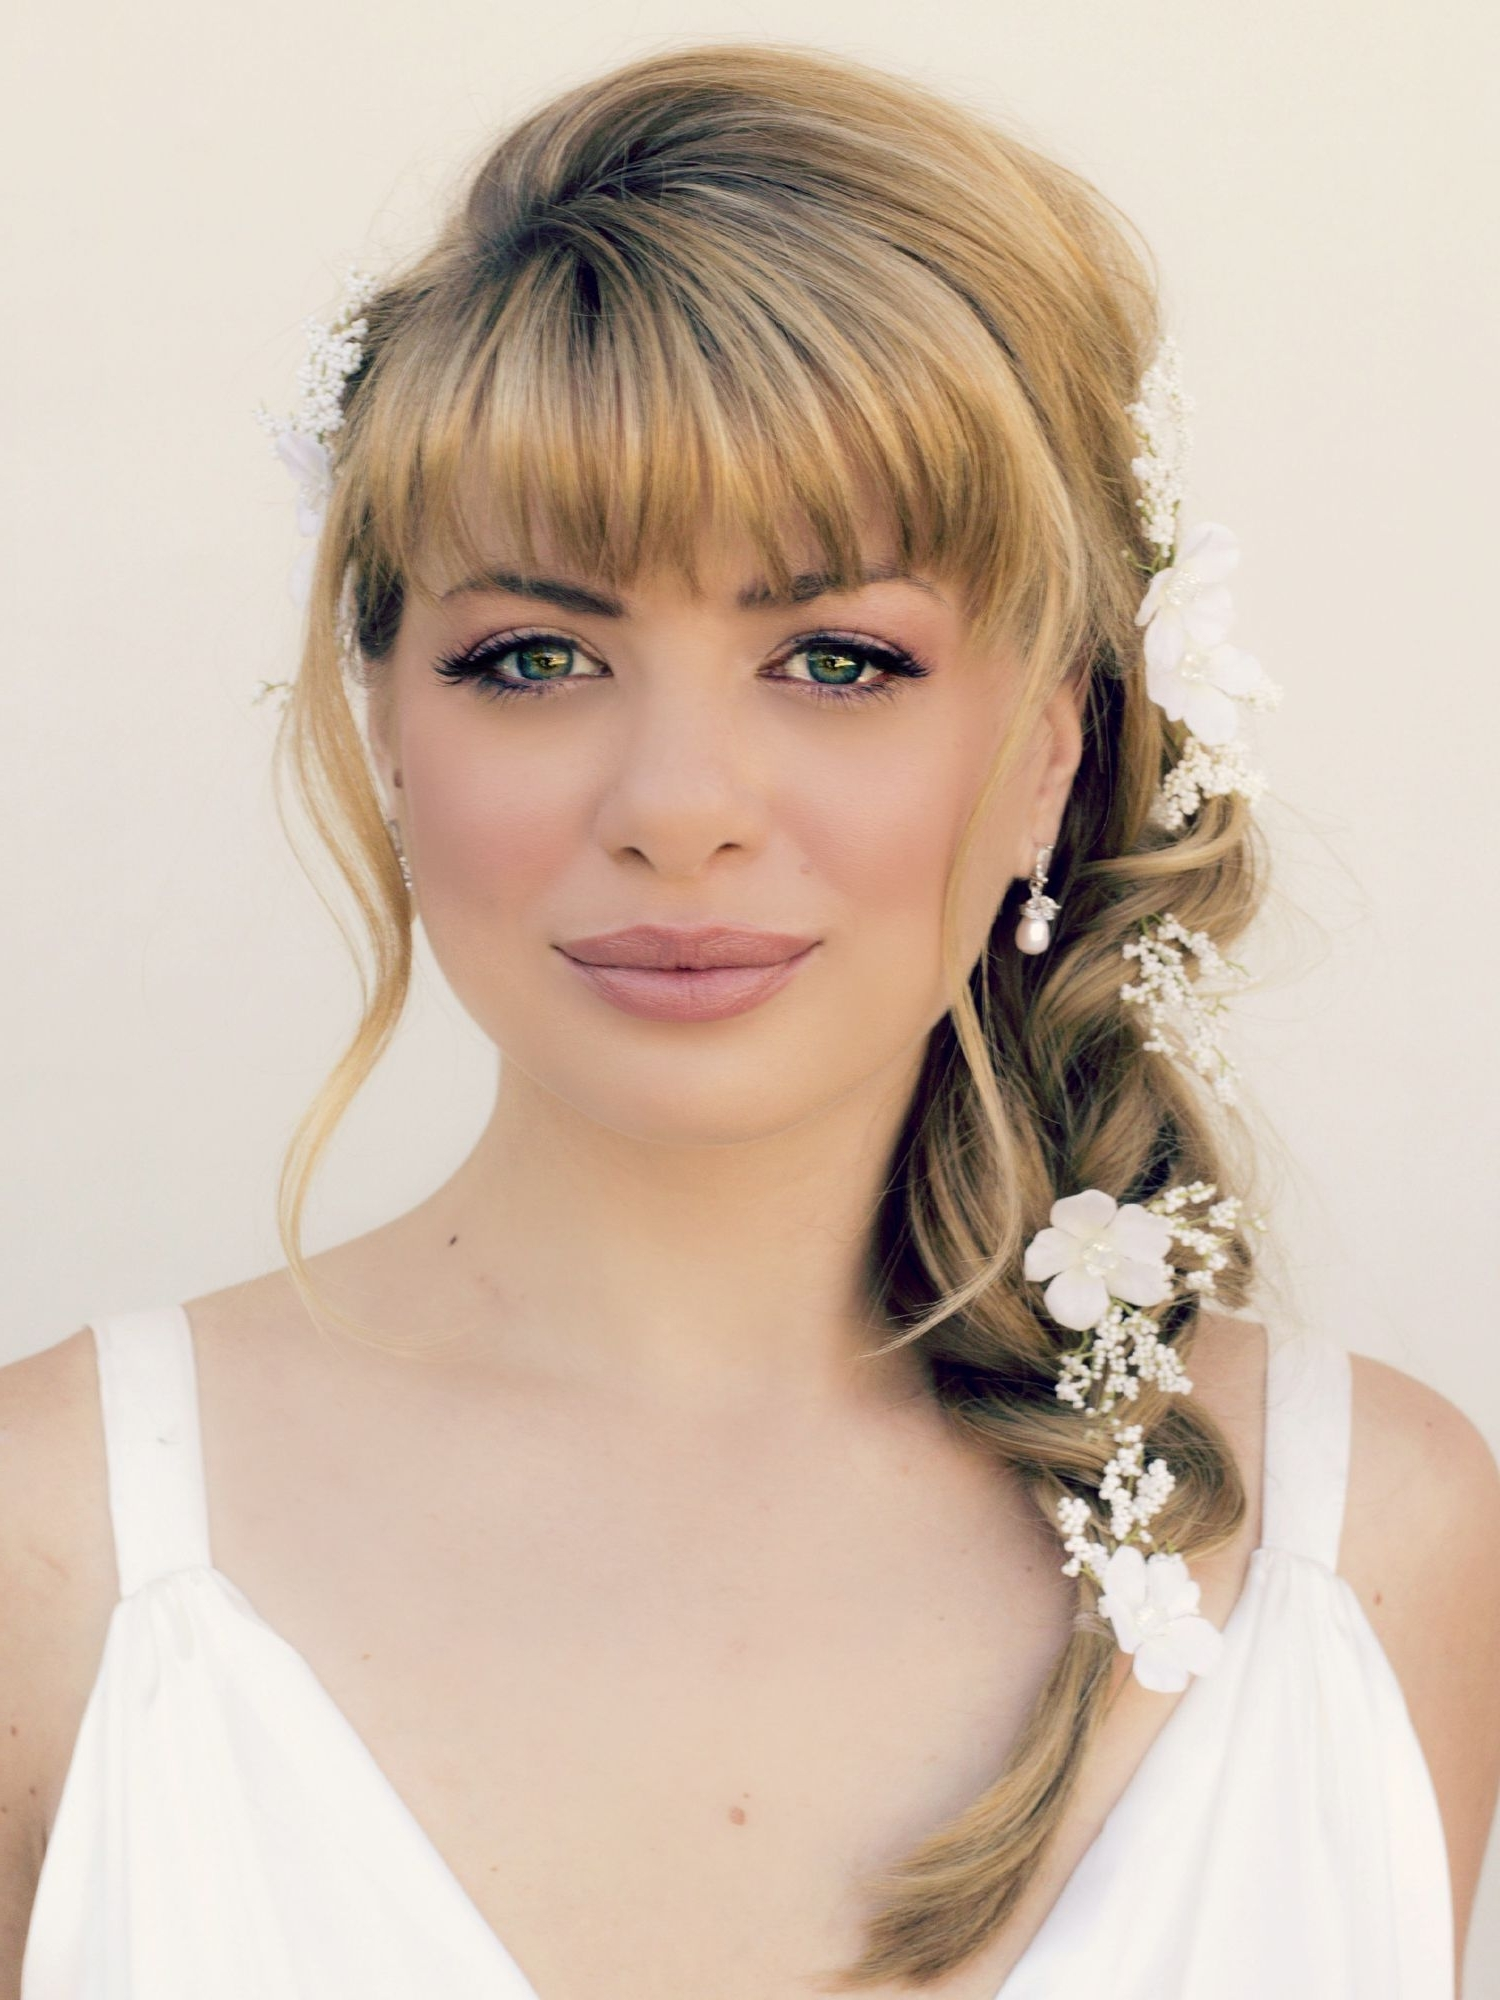 20 Hairstyles With Bangs To Inspire You For Fall (View 2 of 15)